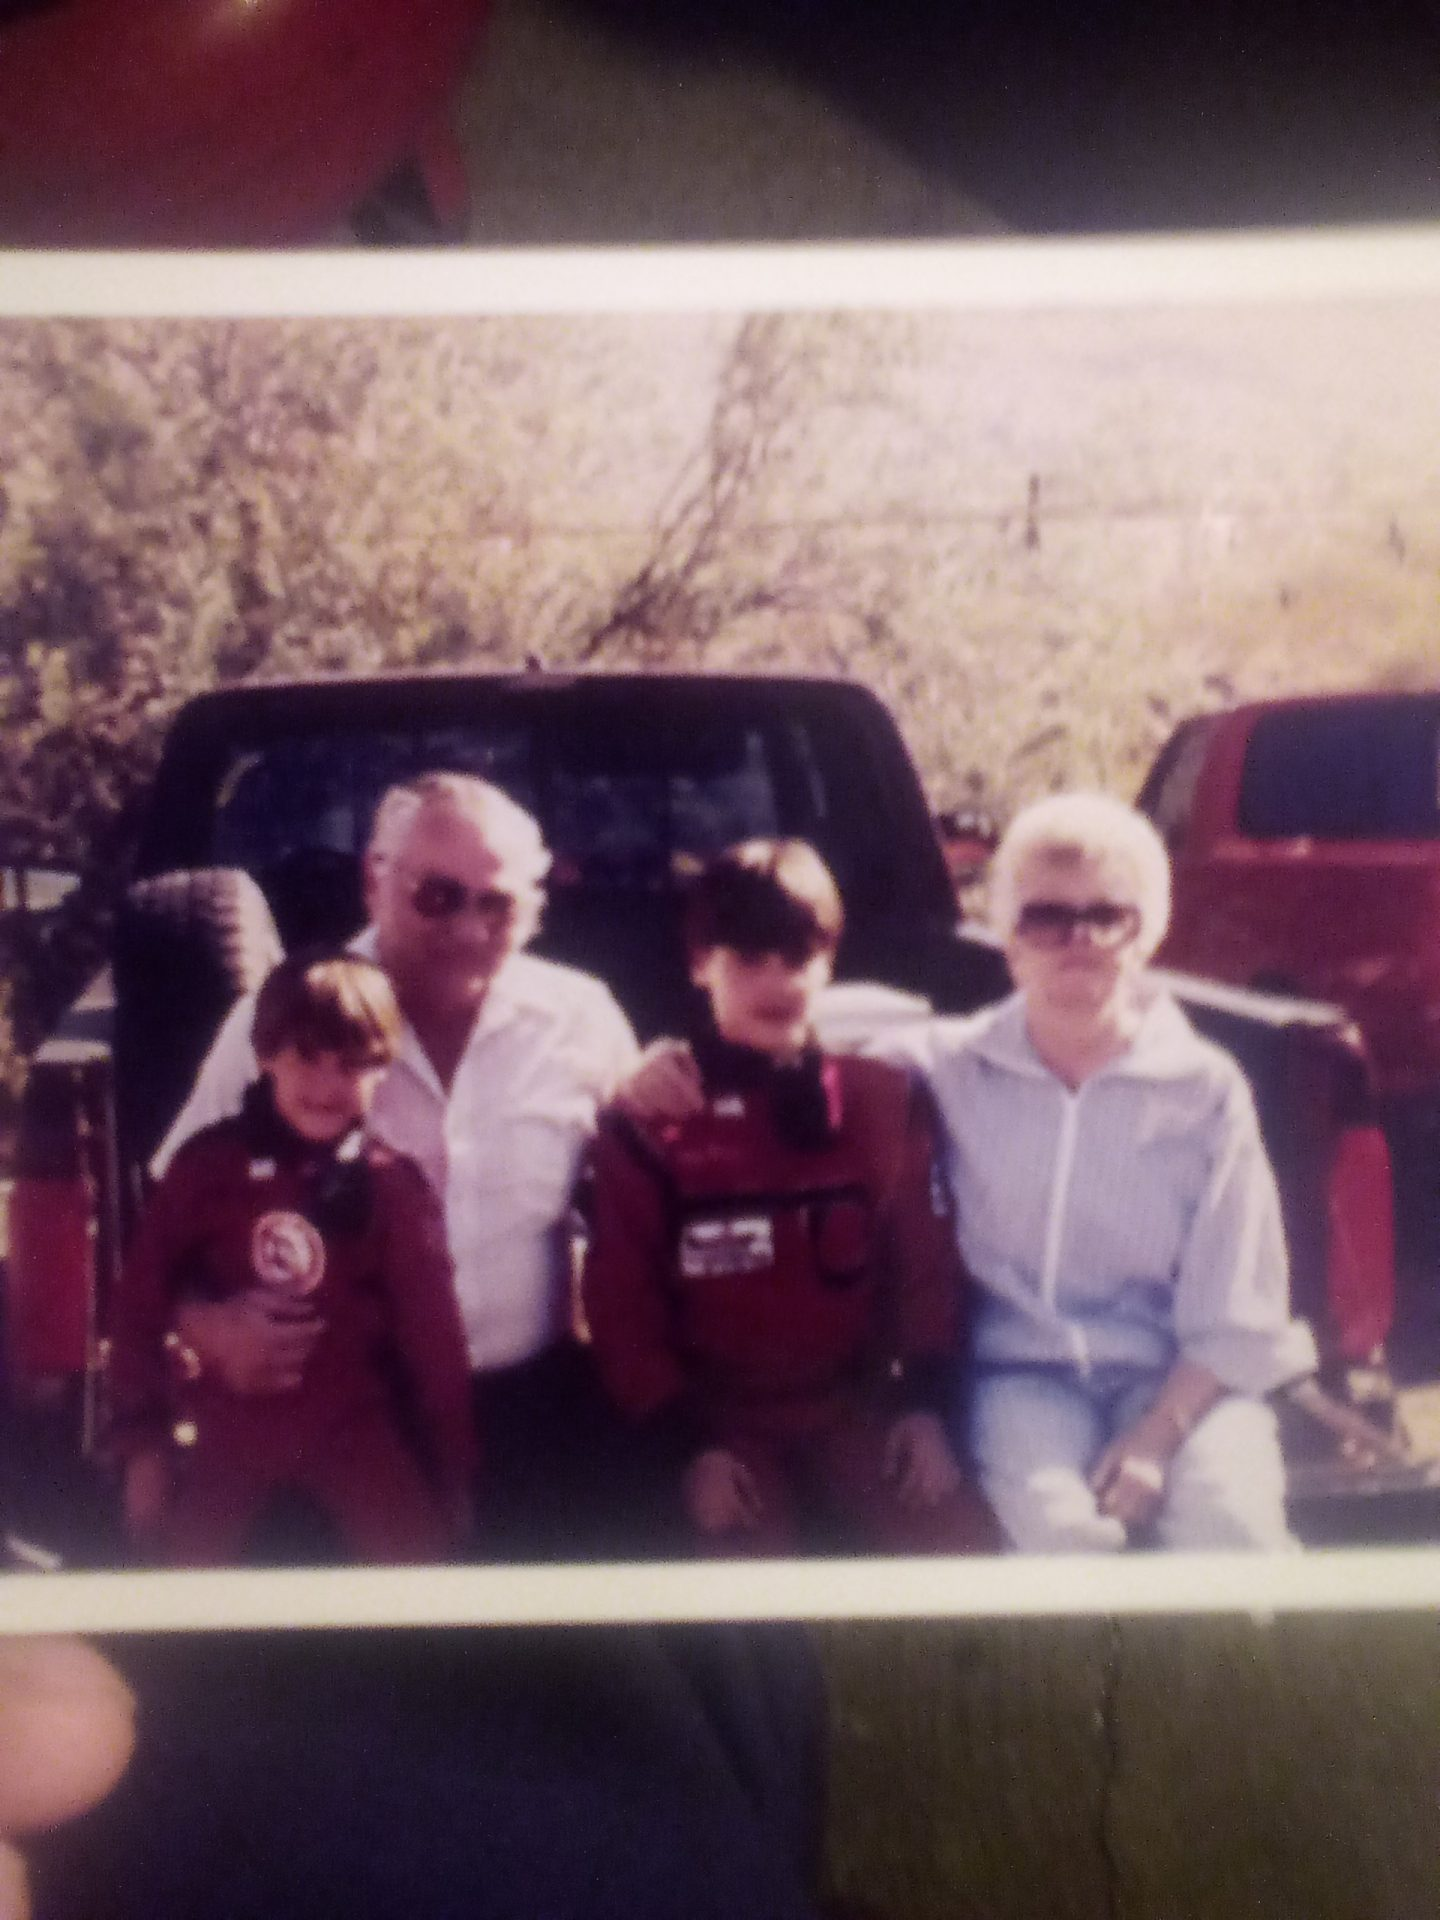 Joe and Joyce Grimes with their grandsons Joey and Jake Grimes at the Quarter Midget track at South Mountain, Phoenix, AZ.